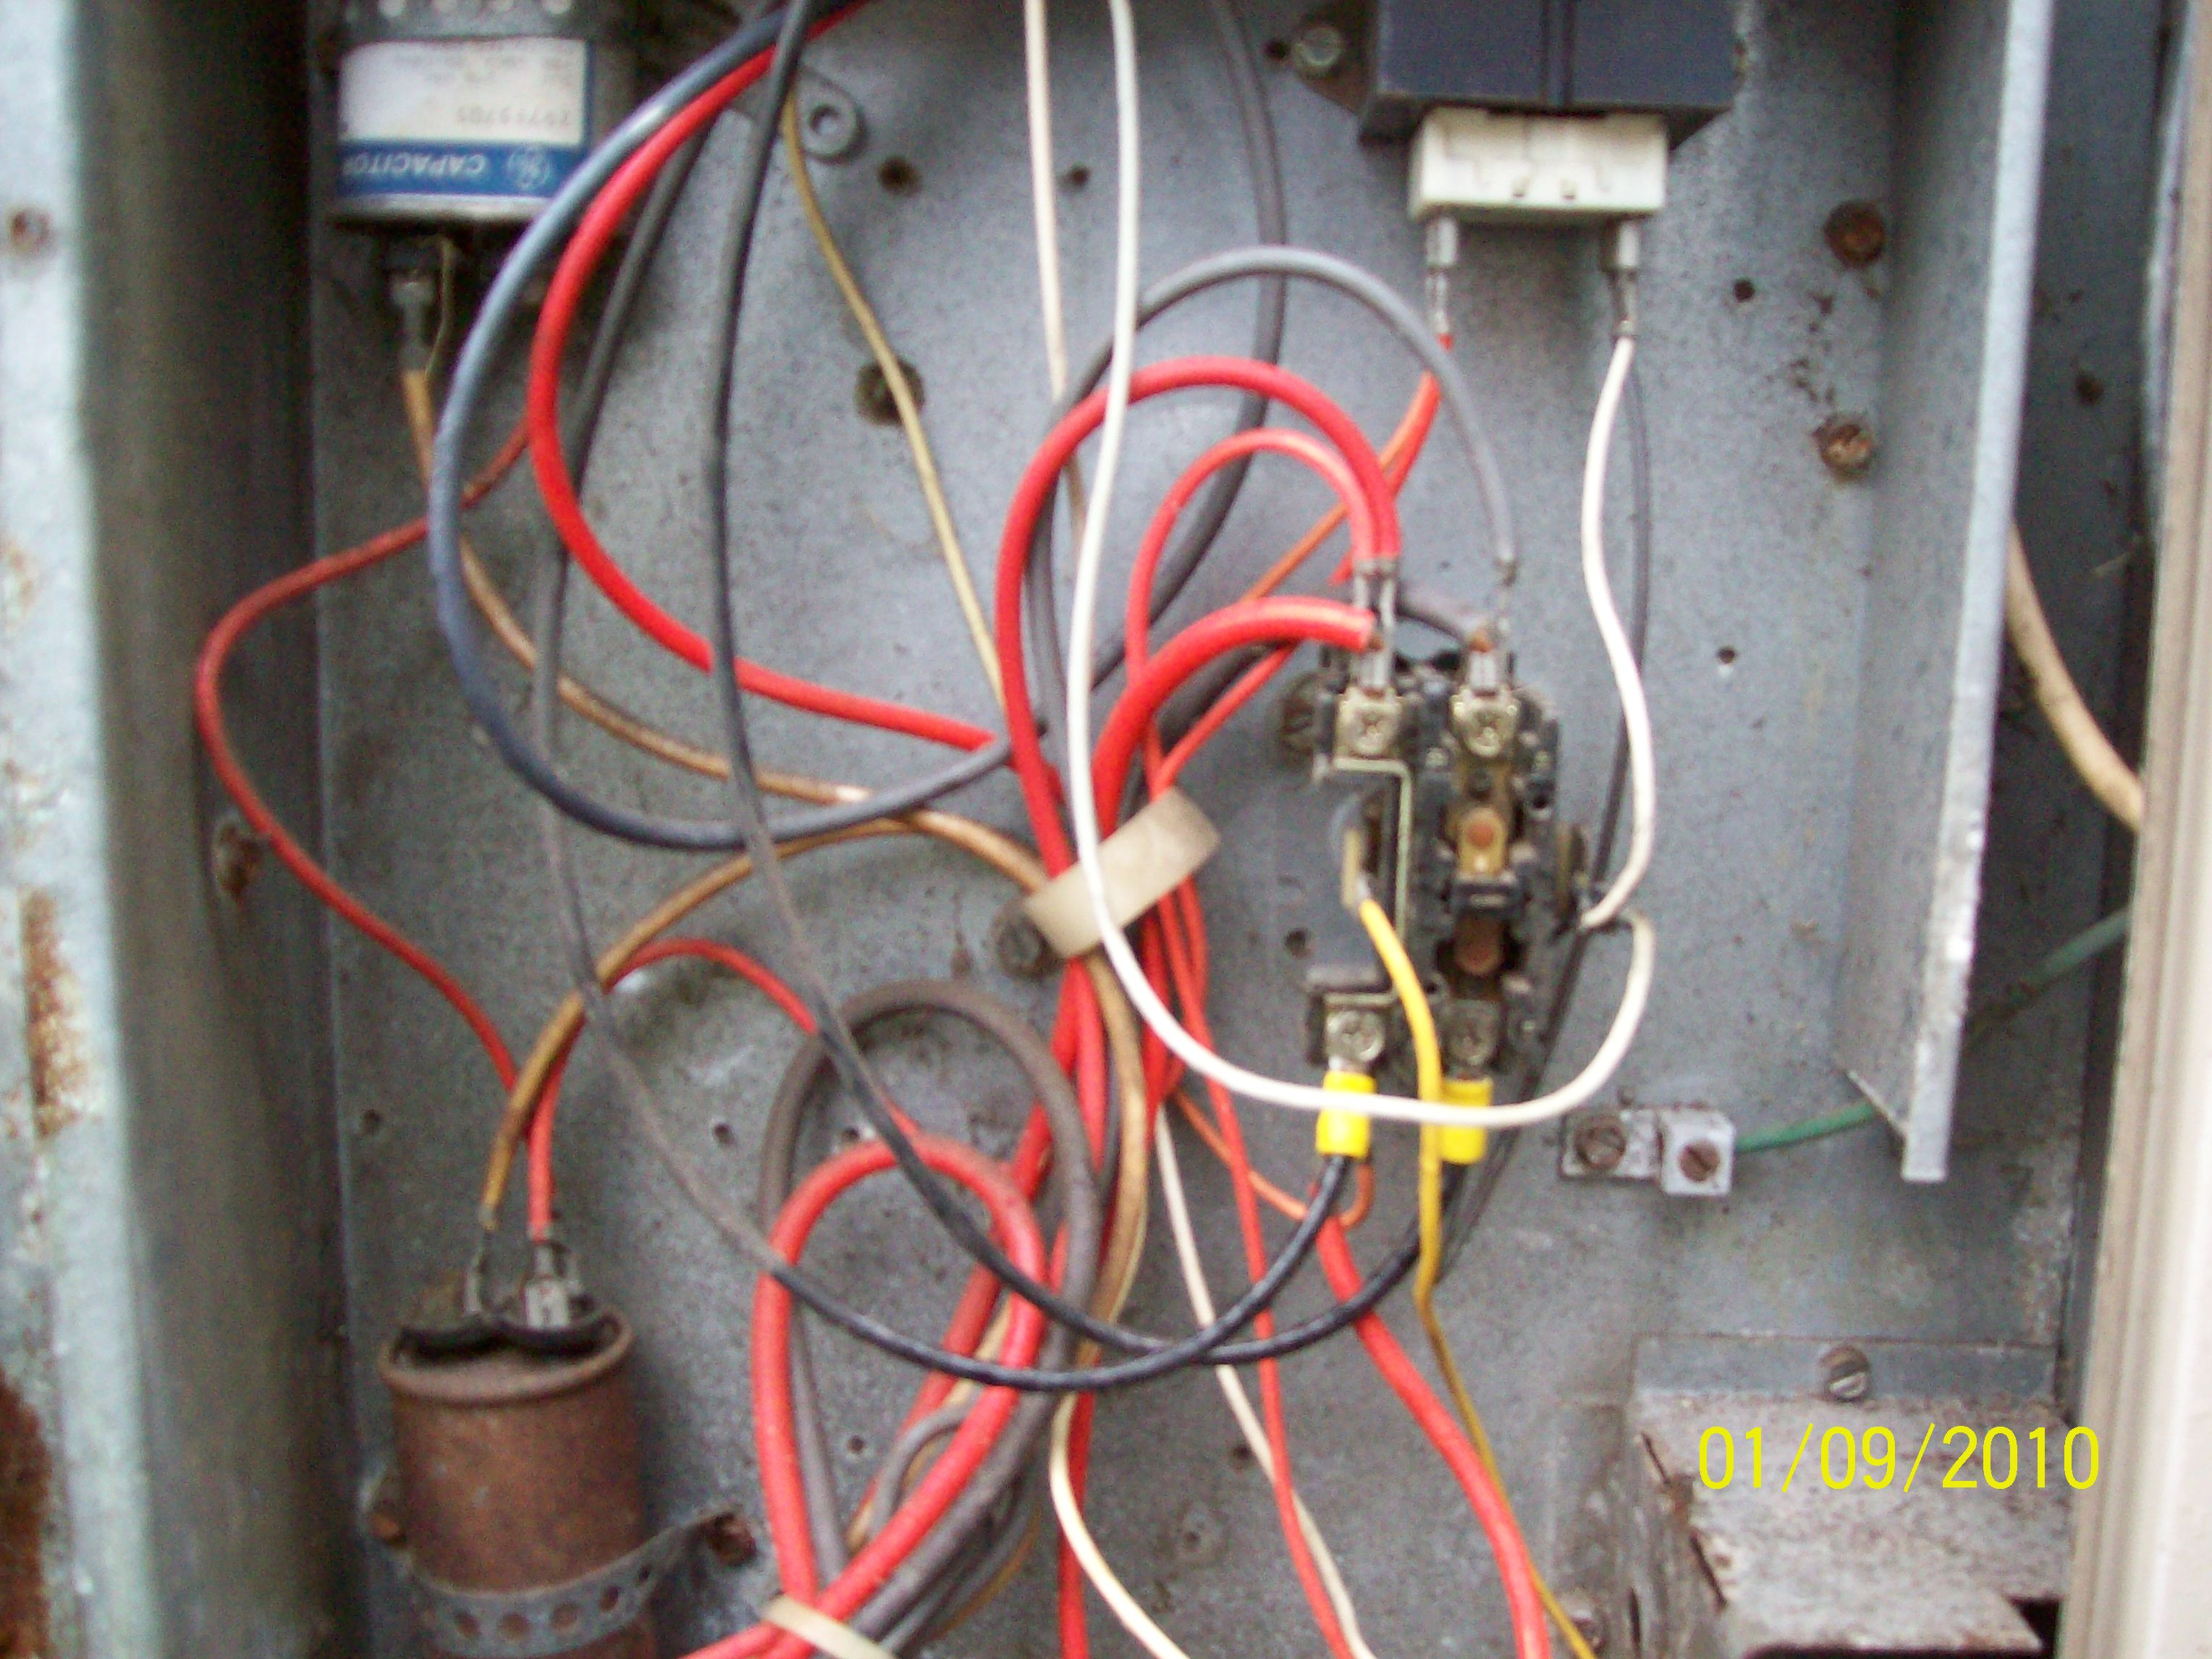 Coleman Evcon Air Conditioner Wiring Diagram 44 Package Unit 2010 01 09 184735 Ac Pictures 001 Simonand